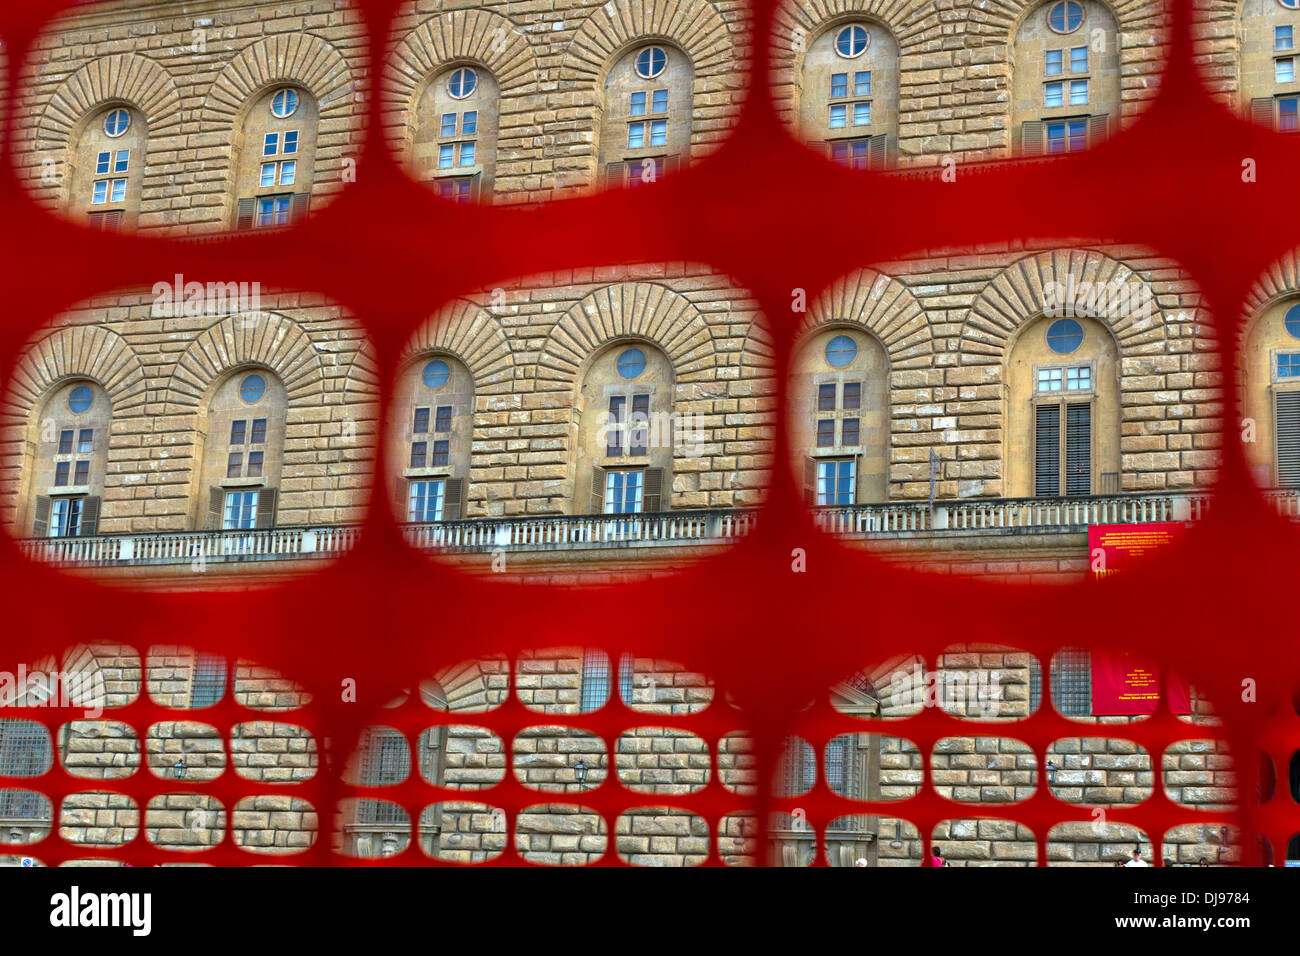 Window details of Pitti Palace seen through a red safety barricade, Florence, Italy - Stock Image